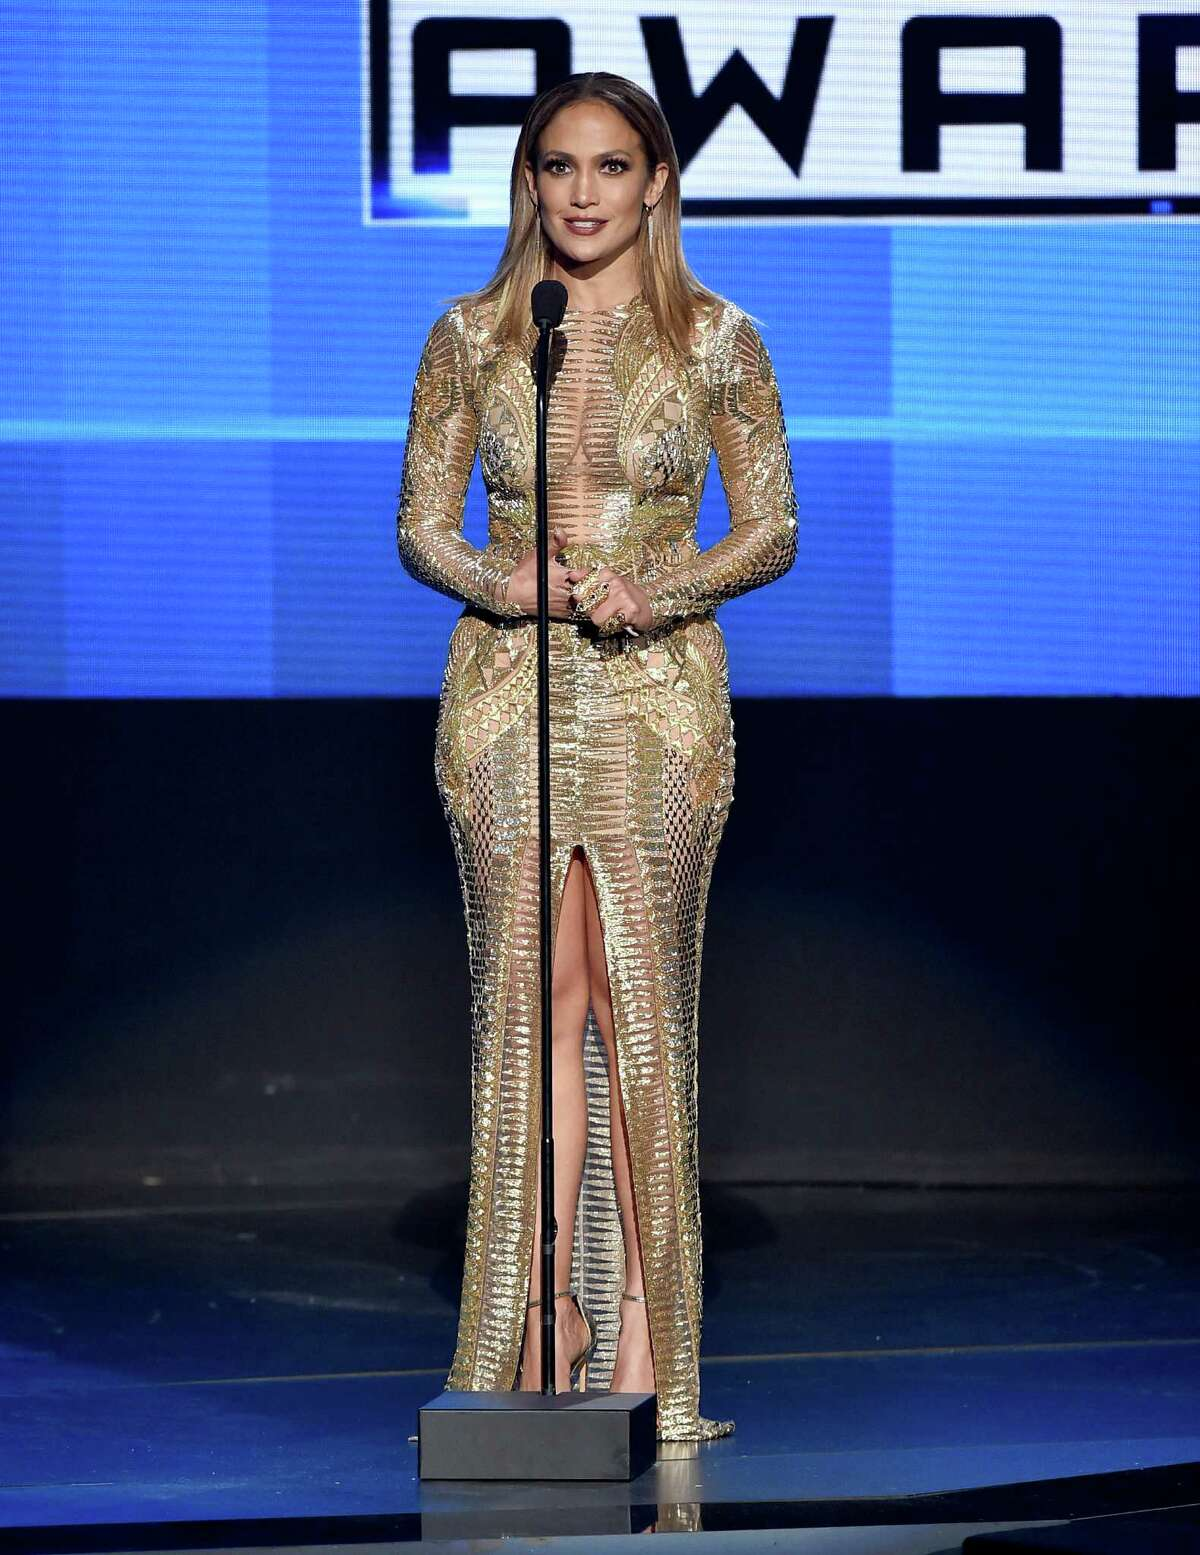 LOS ANGELES, CA - NOVEMBER 22: Jennifer Lopez speaks onstage at the 2015 American Music Awards at Microsoft Theater on November 22, 2015 in Los Angeles, California. (Photo by Michael Tran/FilmMagic)